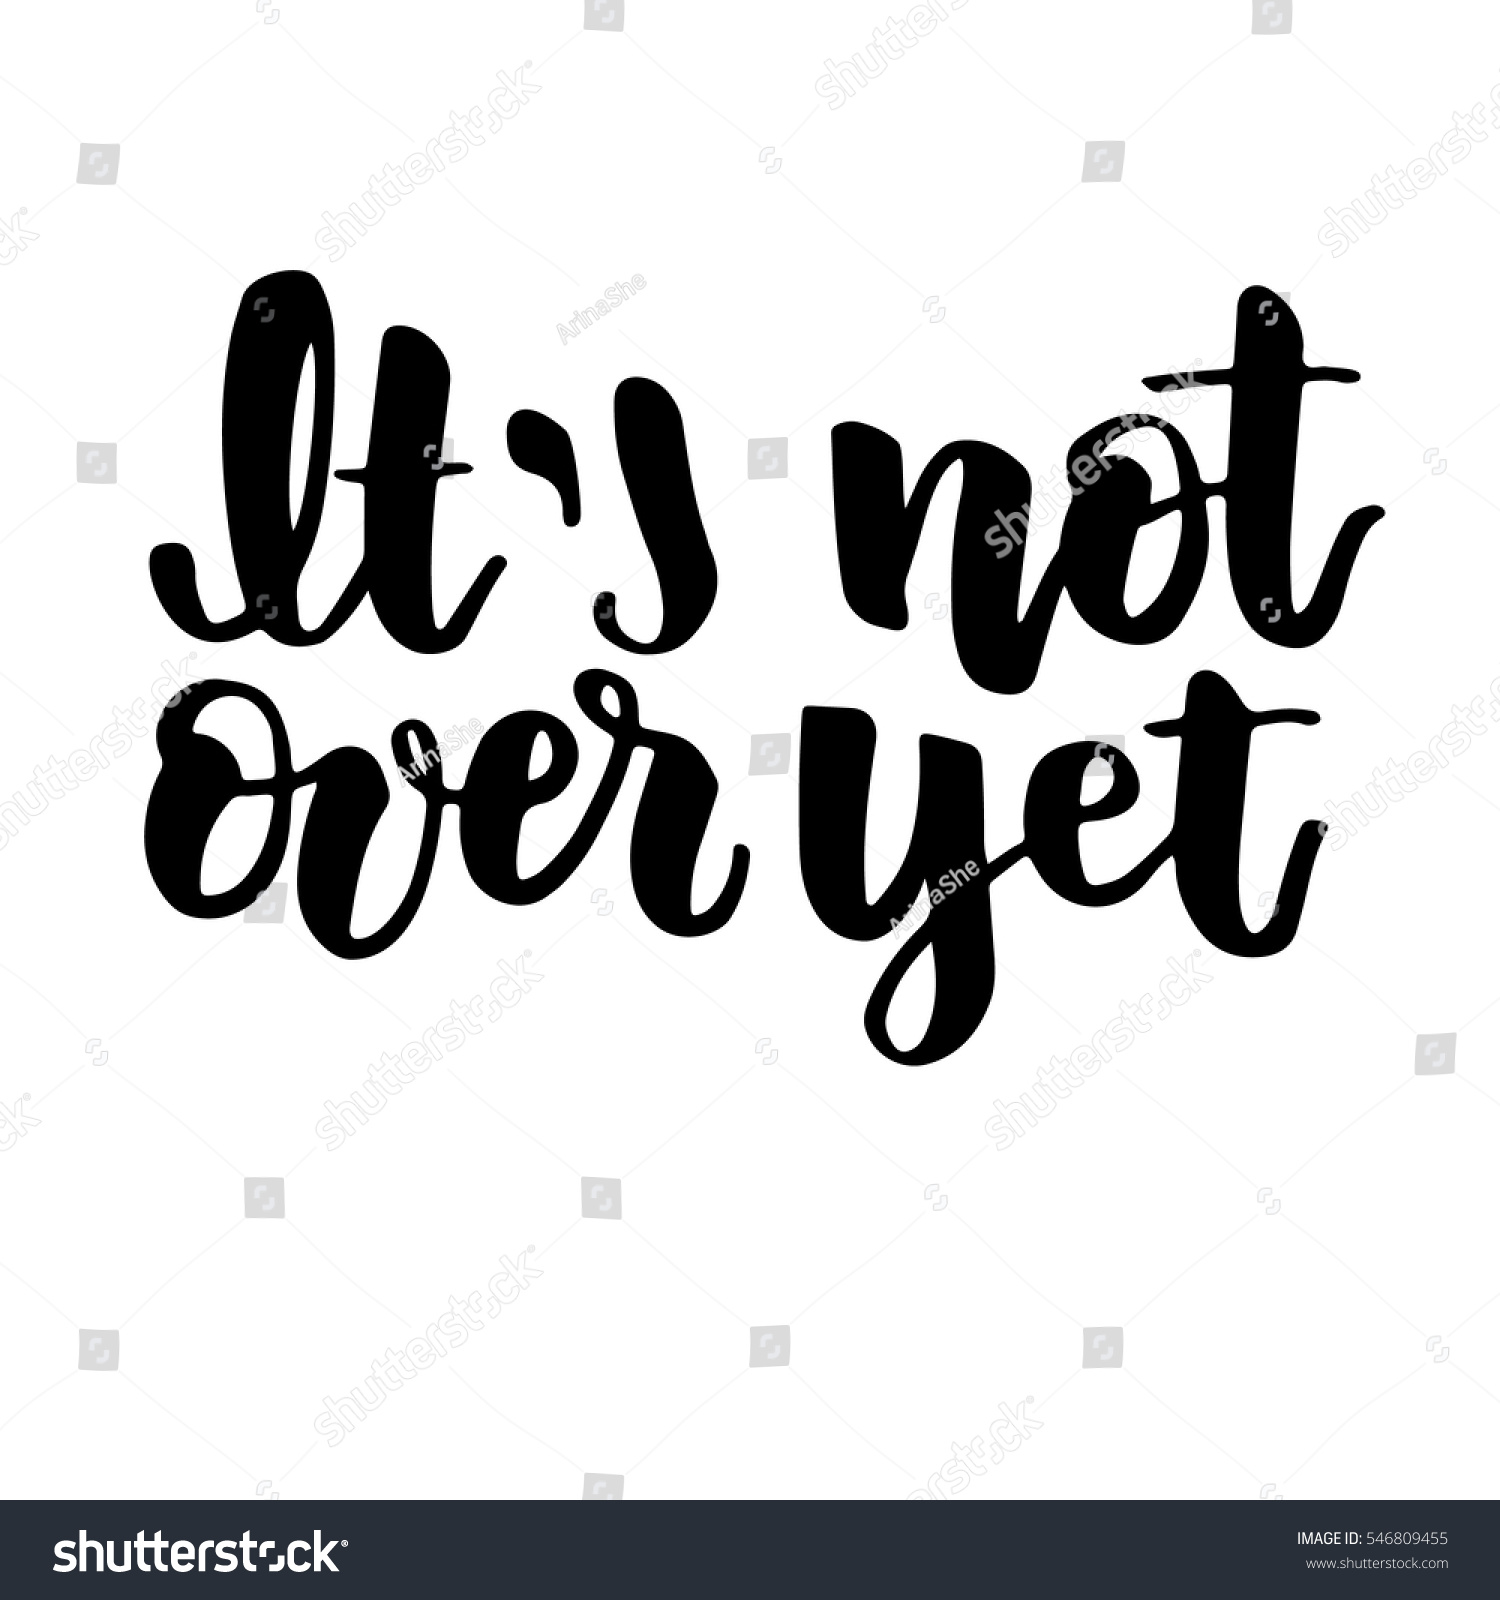 Not Over Yet Modern Lettering Design Stock Vector (Royalty Free ...